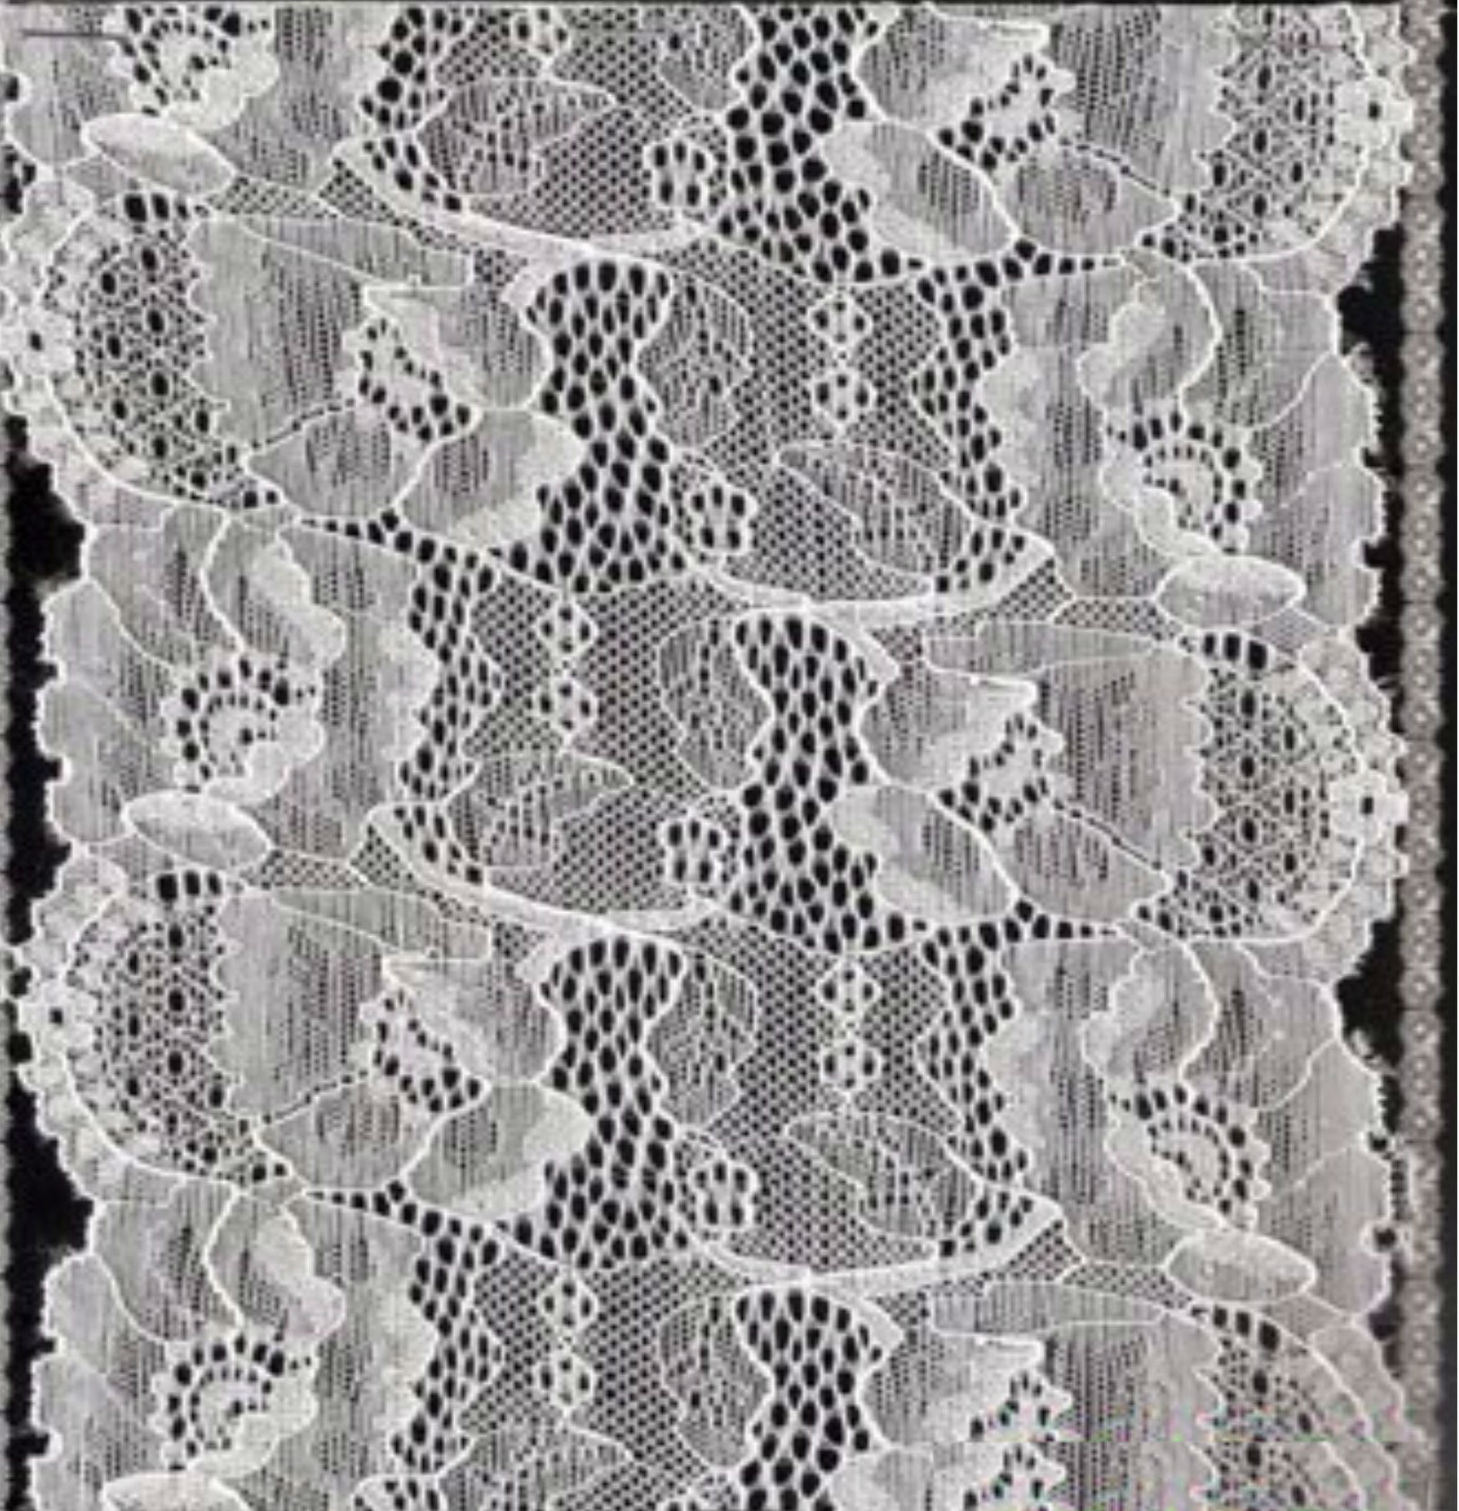 18cm Stretch Lace for Lingerie (with oeko-tex standard 100 certification)